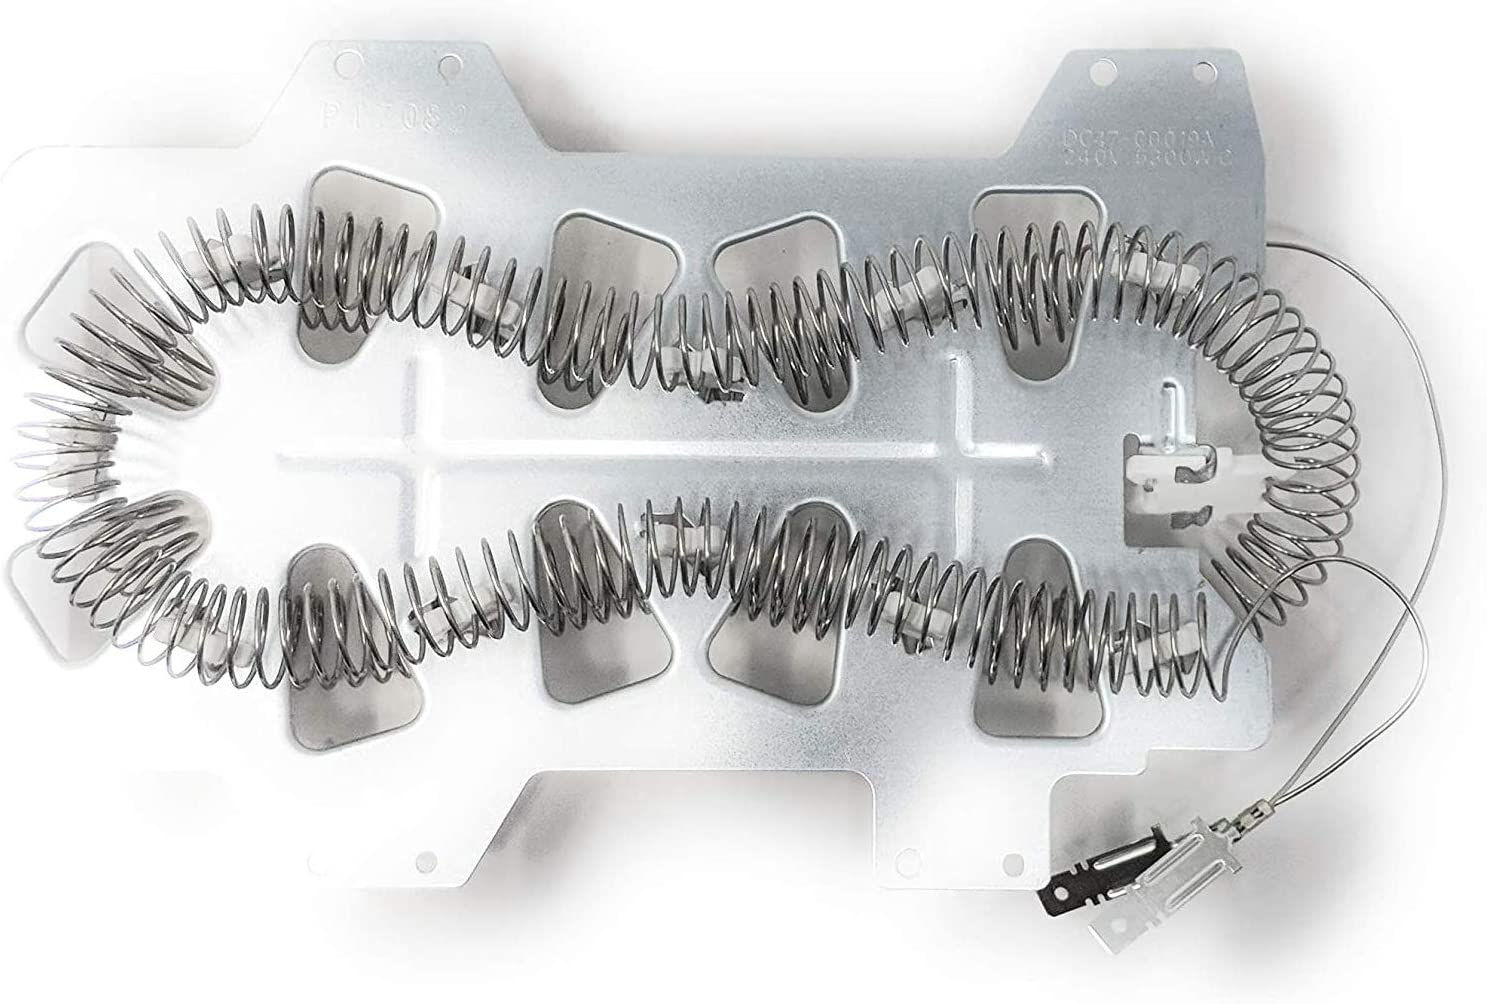 Appliance Pros, Dryer Heating Element, Clothes Dryer Replacement Parts, Insulators & Restrings Coils, Compatible Replacement